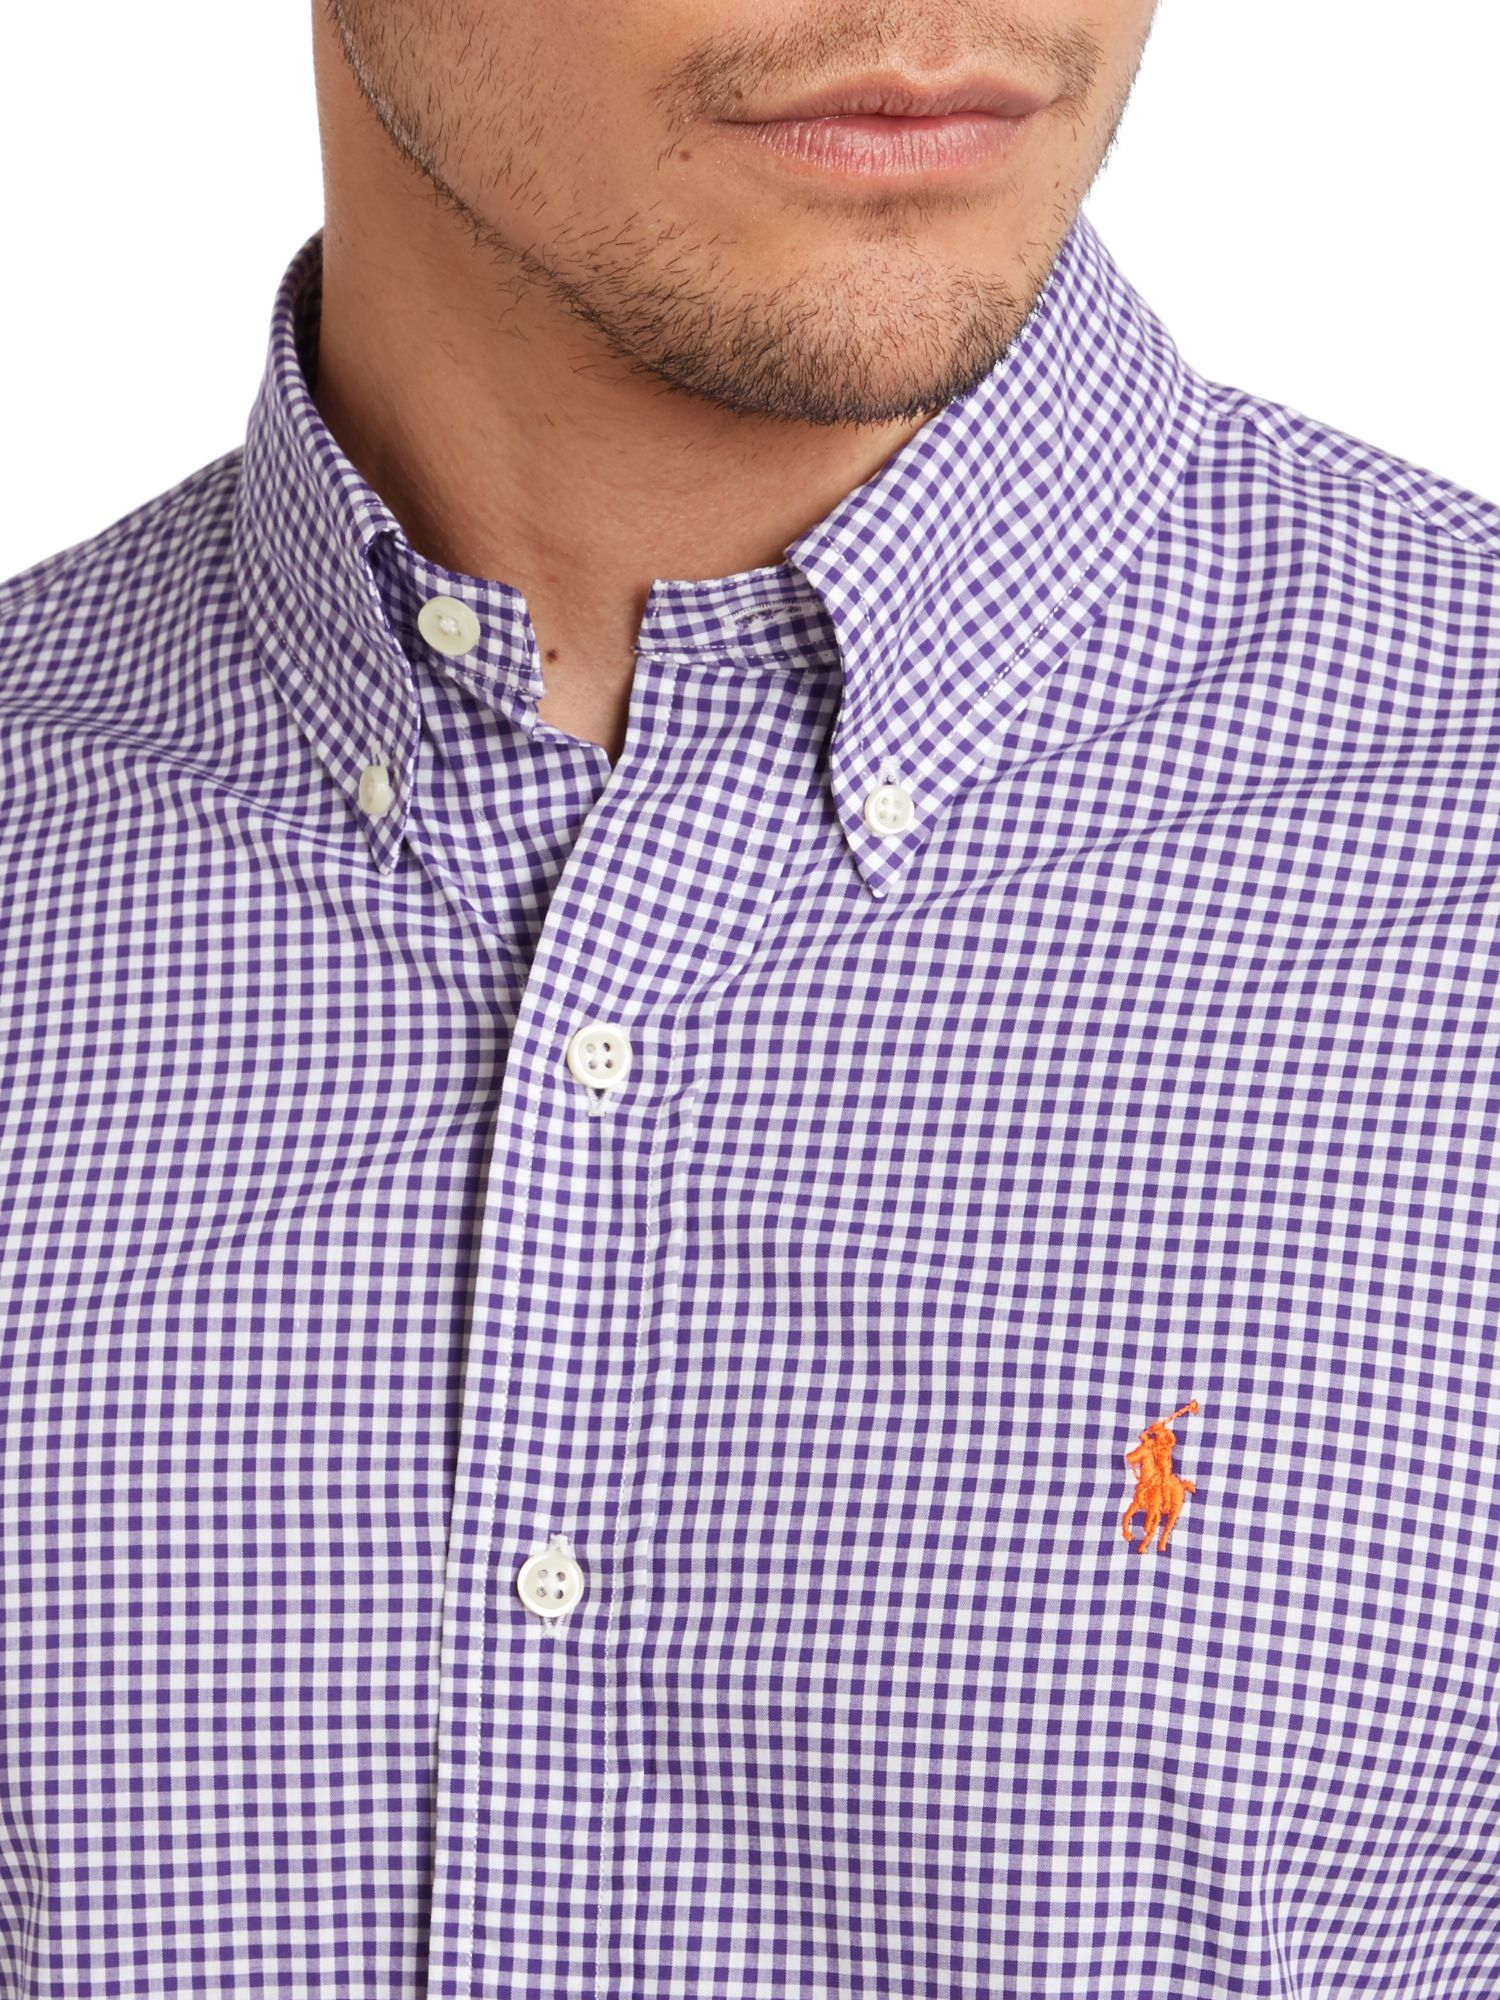 Polo ralph lauren long sleeve slim fit mini gingham shirt for Purple and white checked shirt